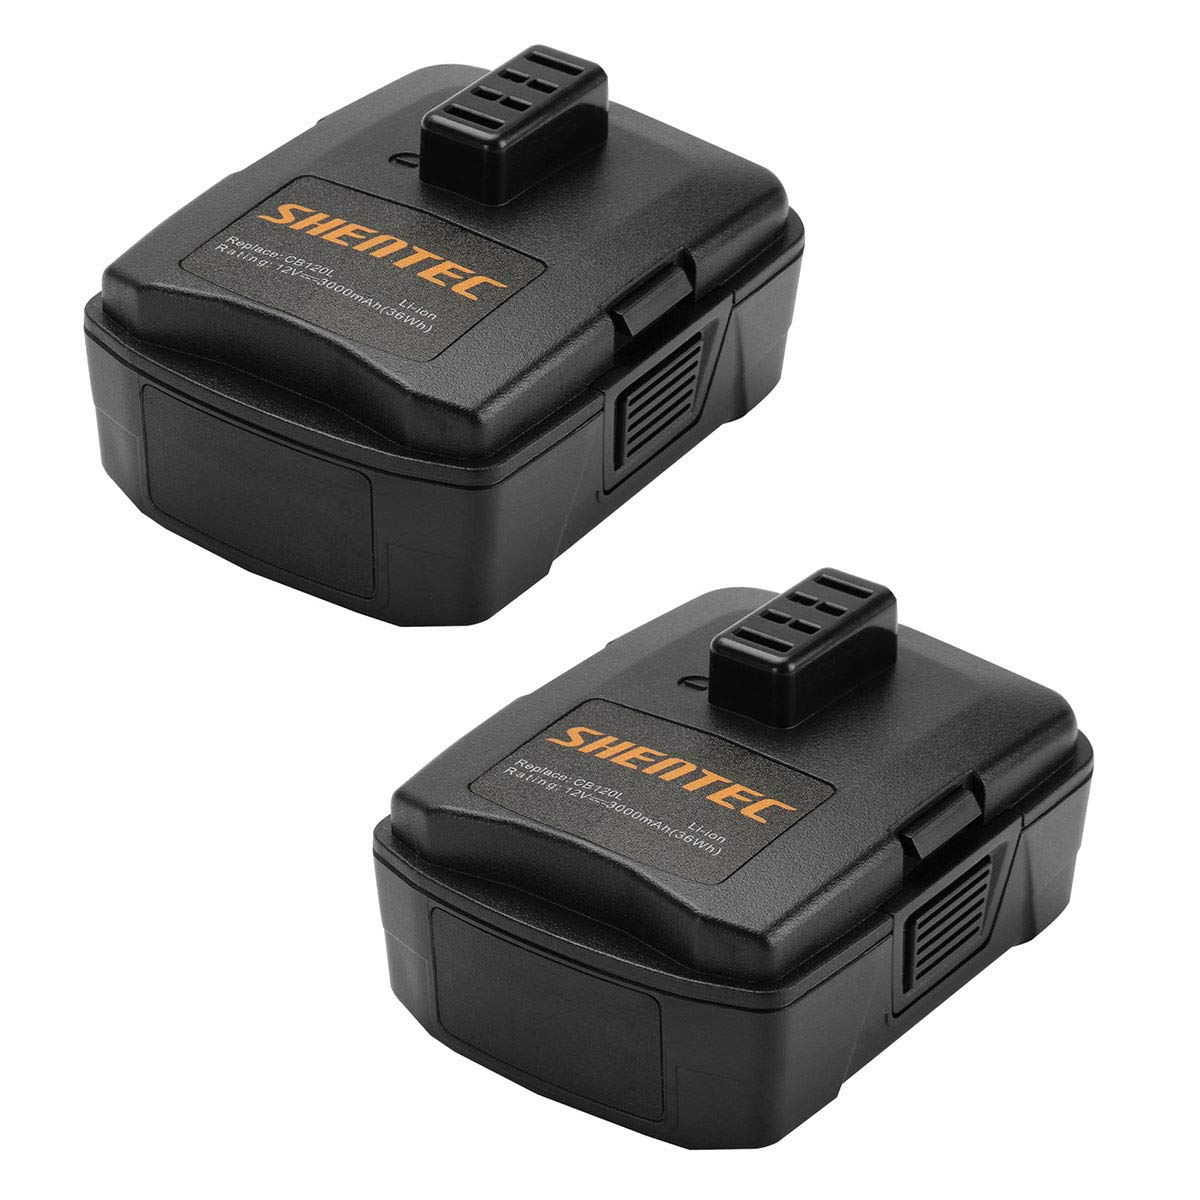 Shentec 2-Pack 12V 3.0Ah Battery Compatible with RYOBI CB120L CB121L BPL-1220 130503001 130503005, 12V Lithium Battery (NOT for CB120N)